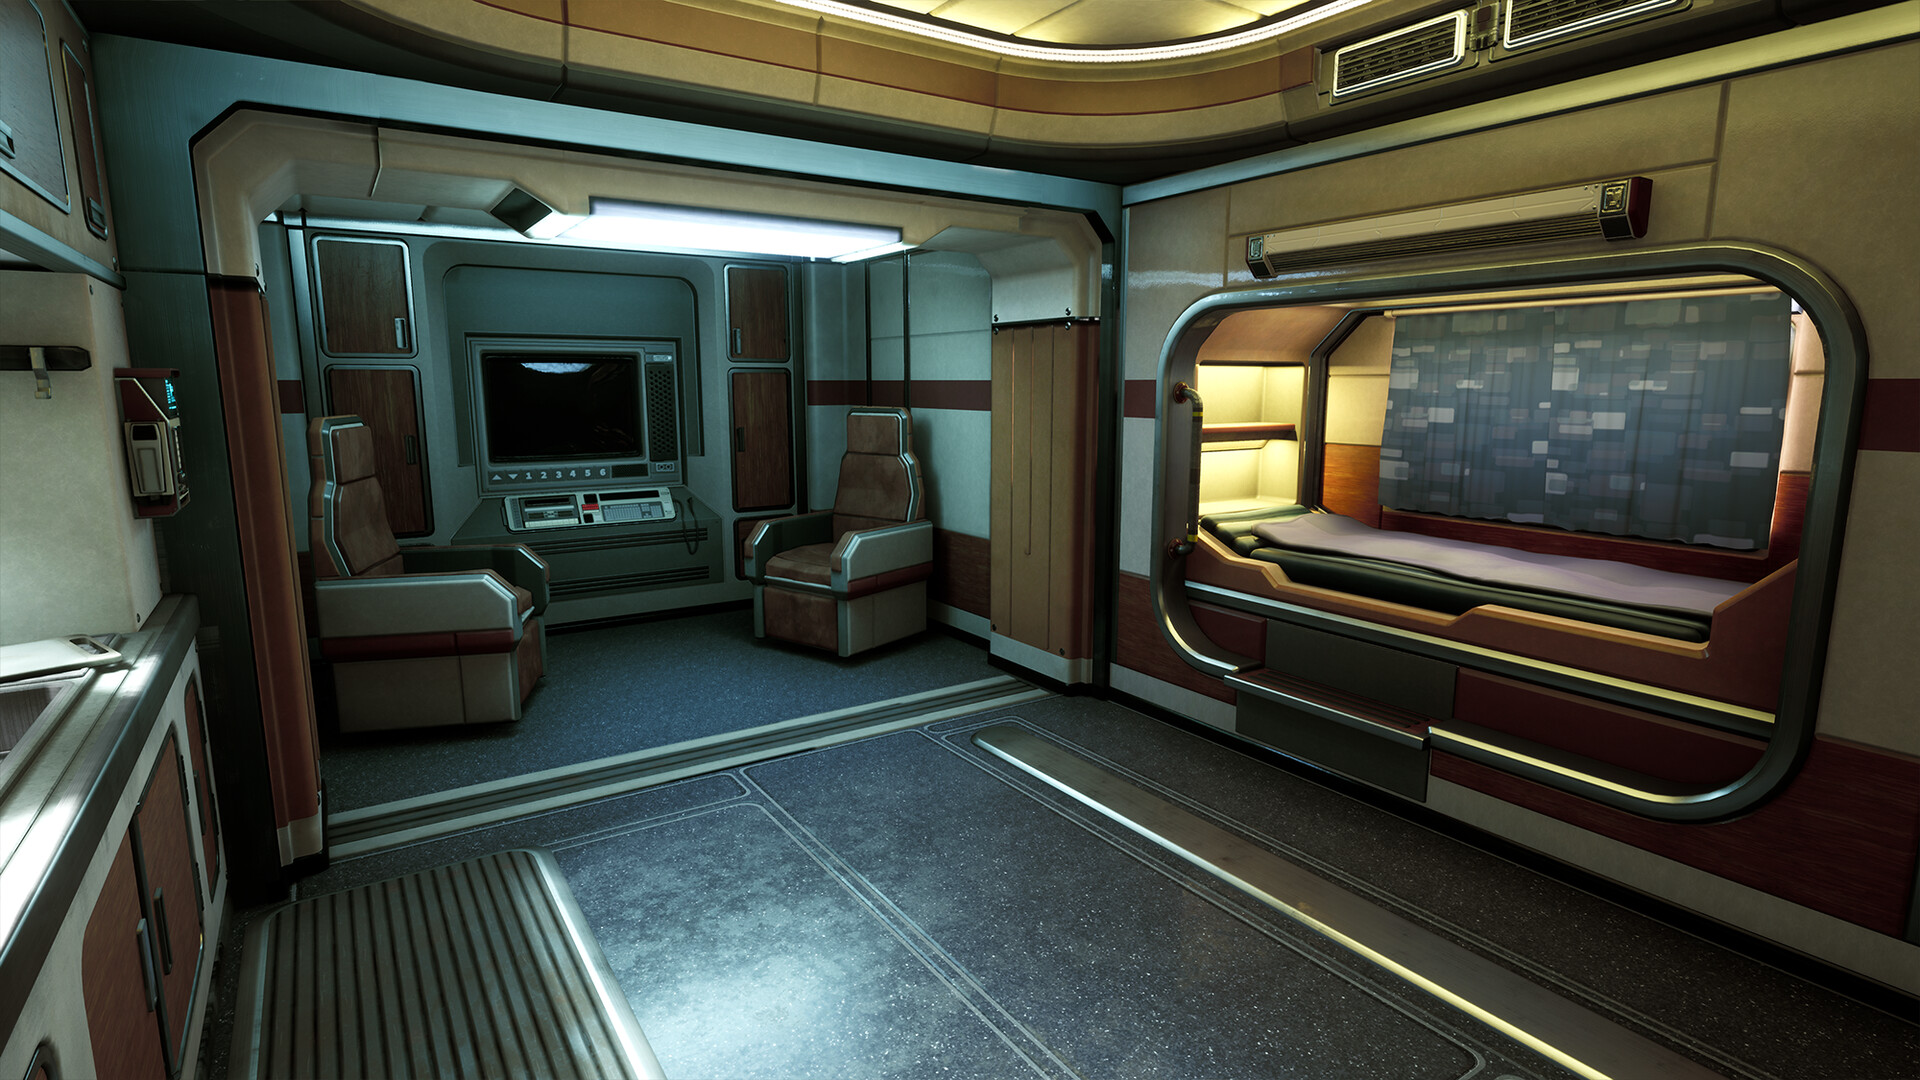 A shot of the living quarters, this view comprises the other half of the cabin's space.